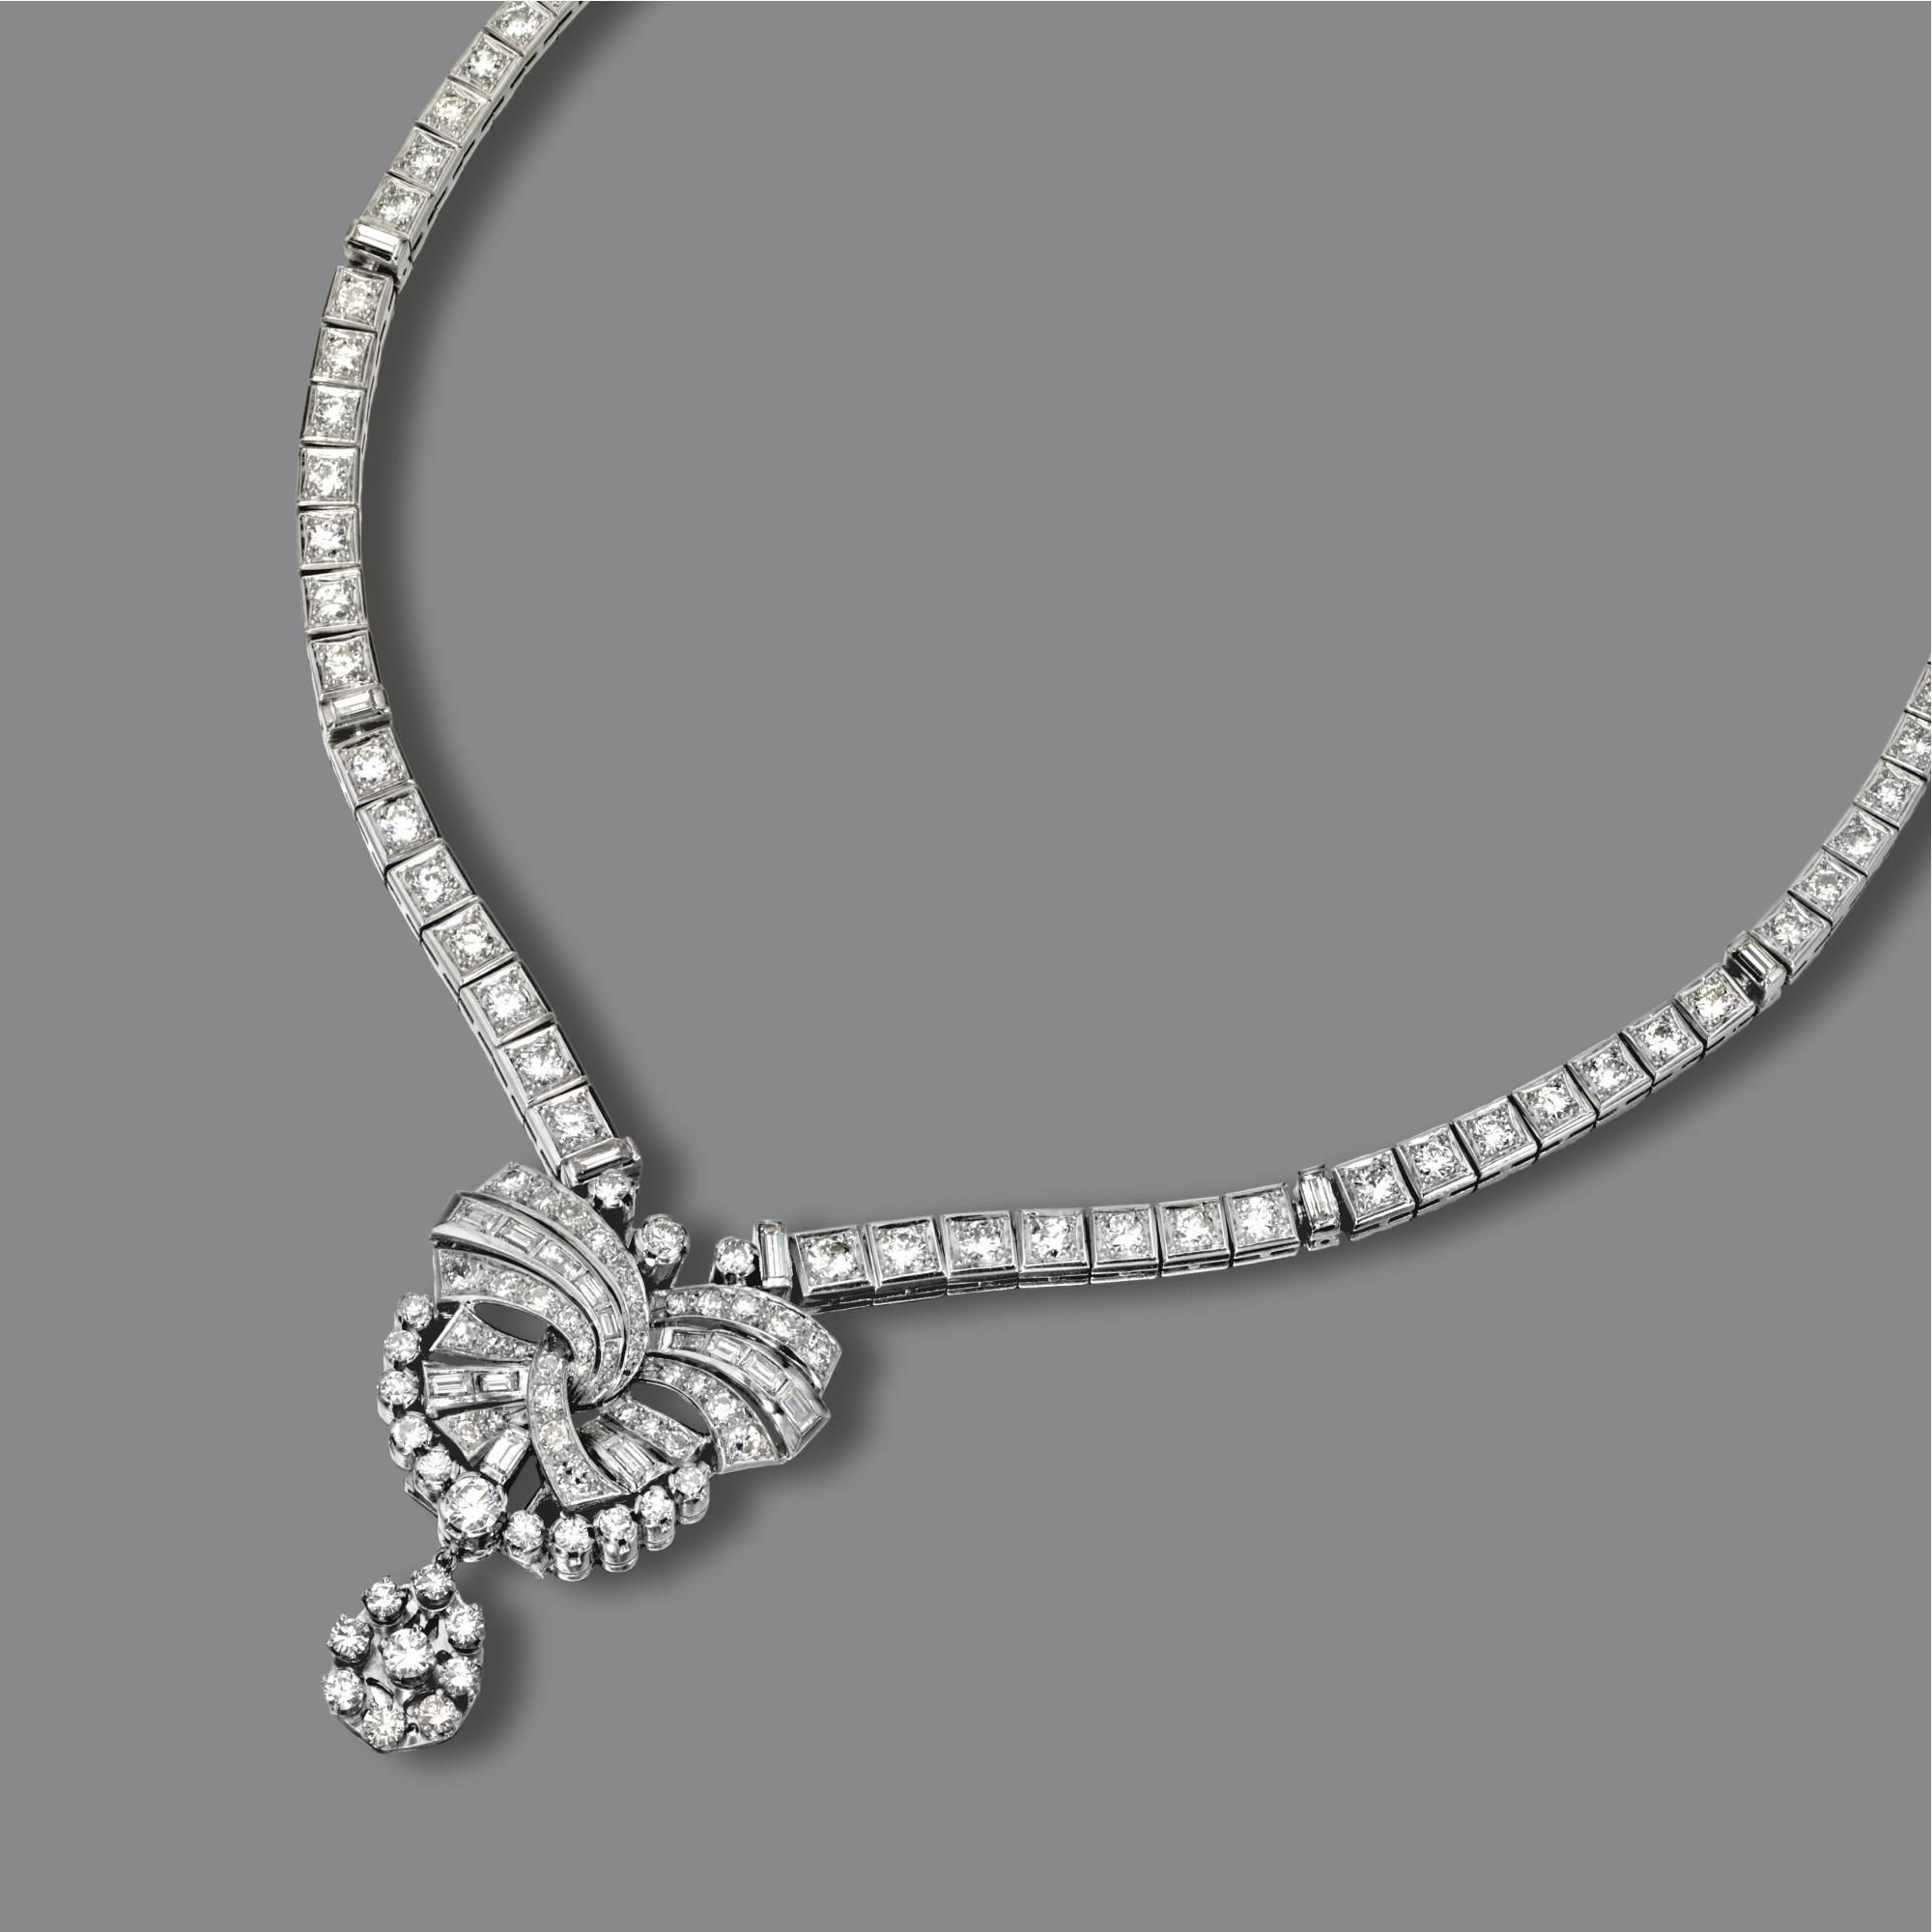 Diamond necklace composed of box links with simple chain links at